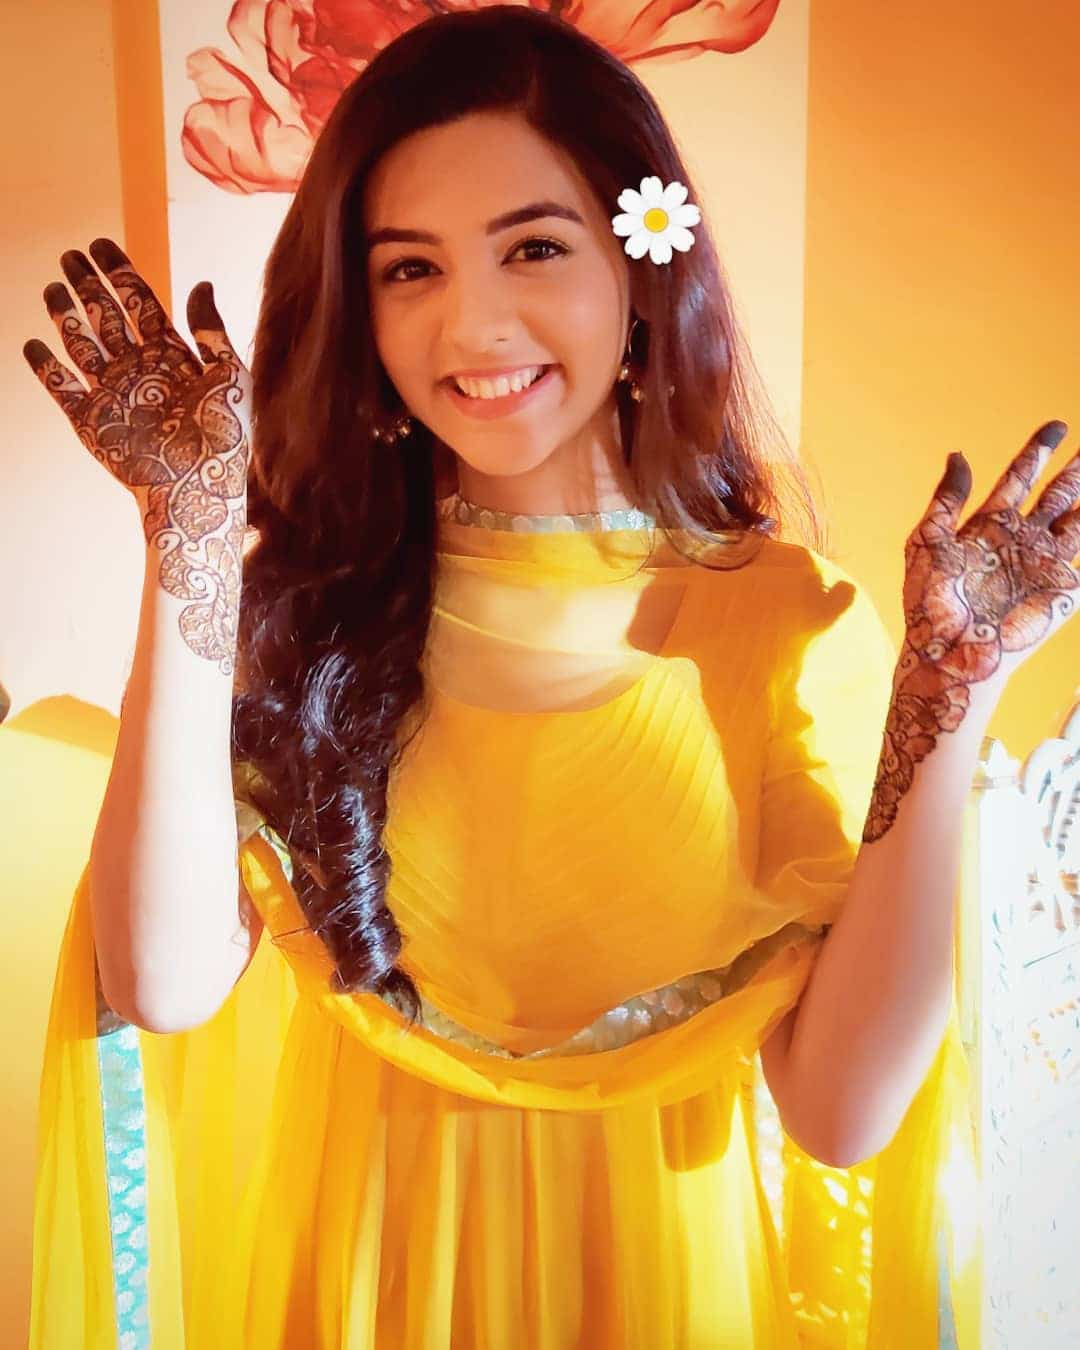 Pranali Rathod Wiki, Biography, Education, Career, Body Measurements, Success Story, Boyfriend, Family, Social Life, Age, and Net Worth